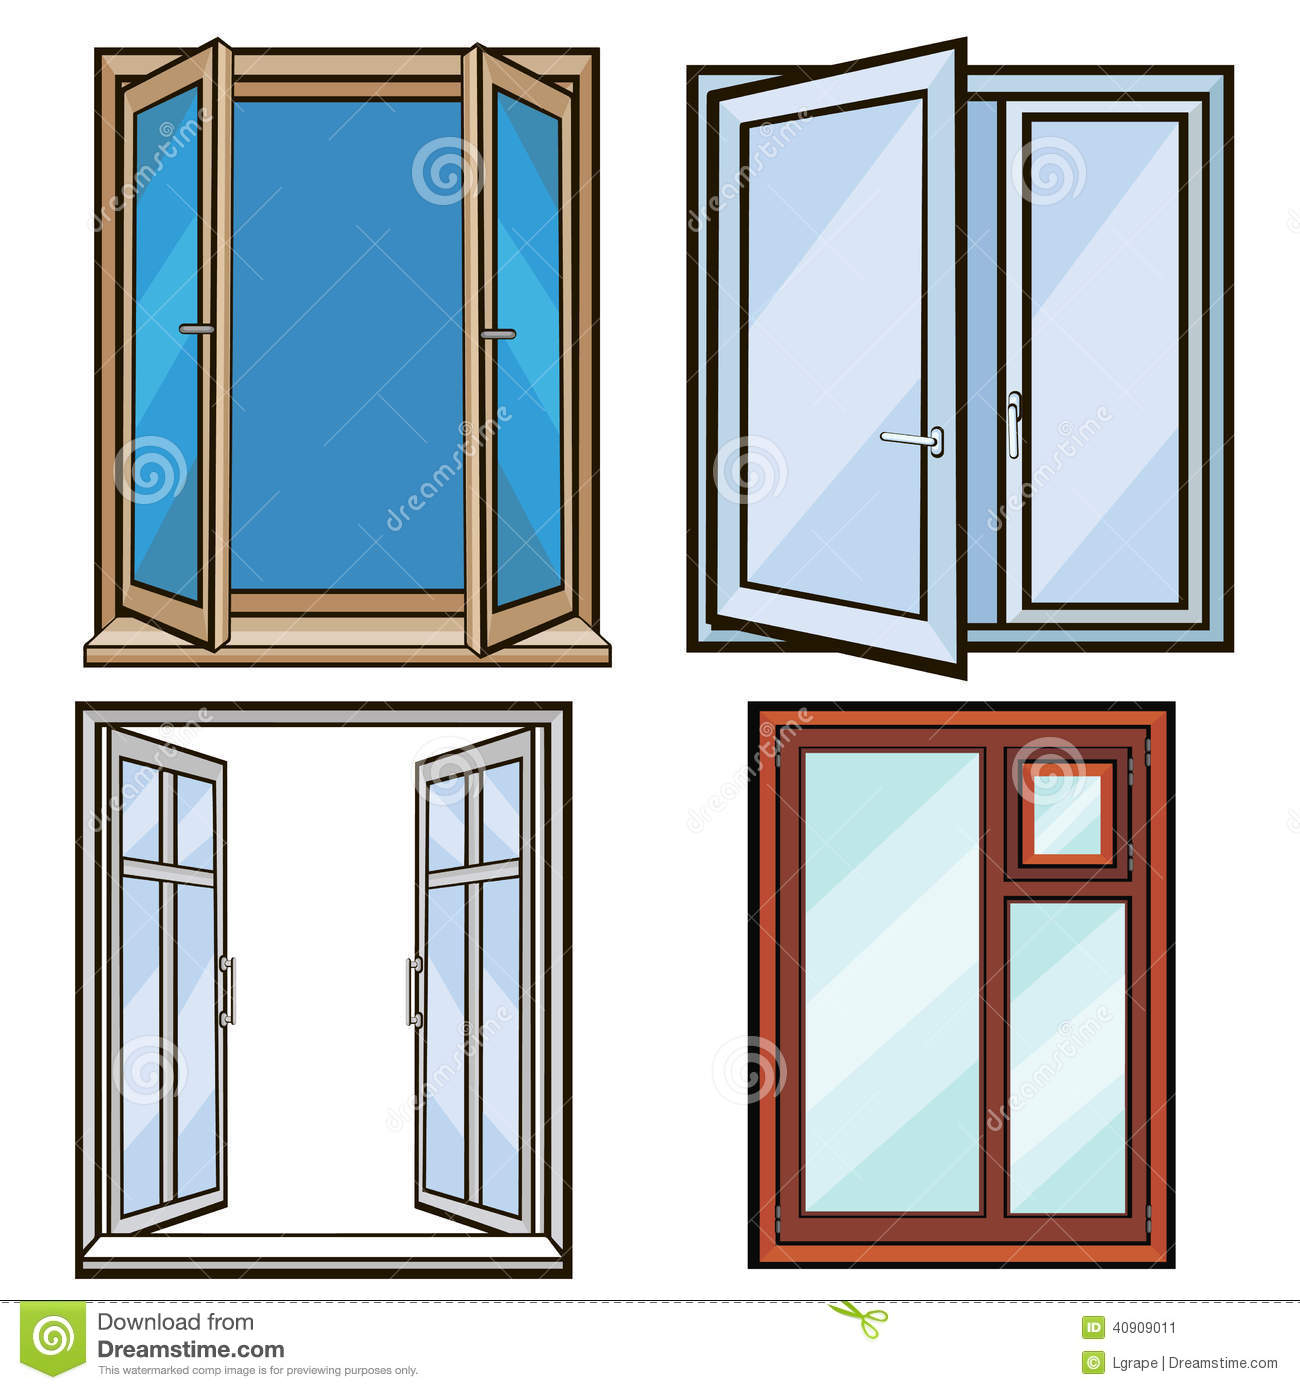 Closed and open windows cartoon style stock vector for Window design cartoon